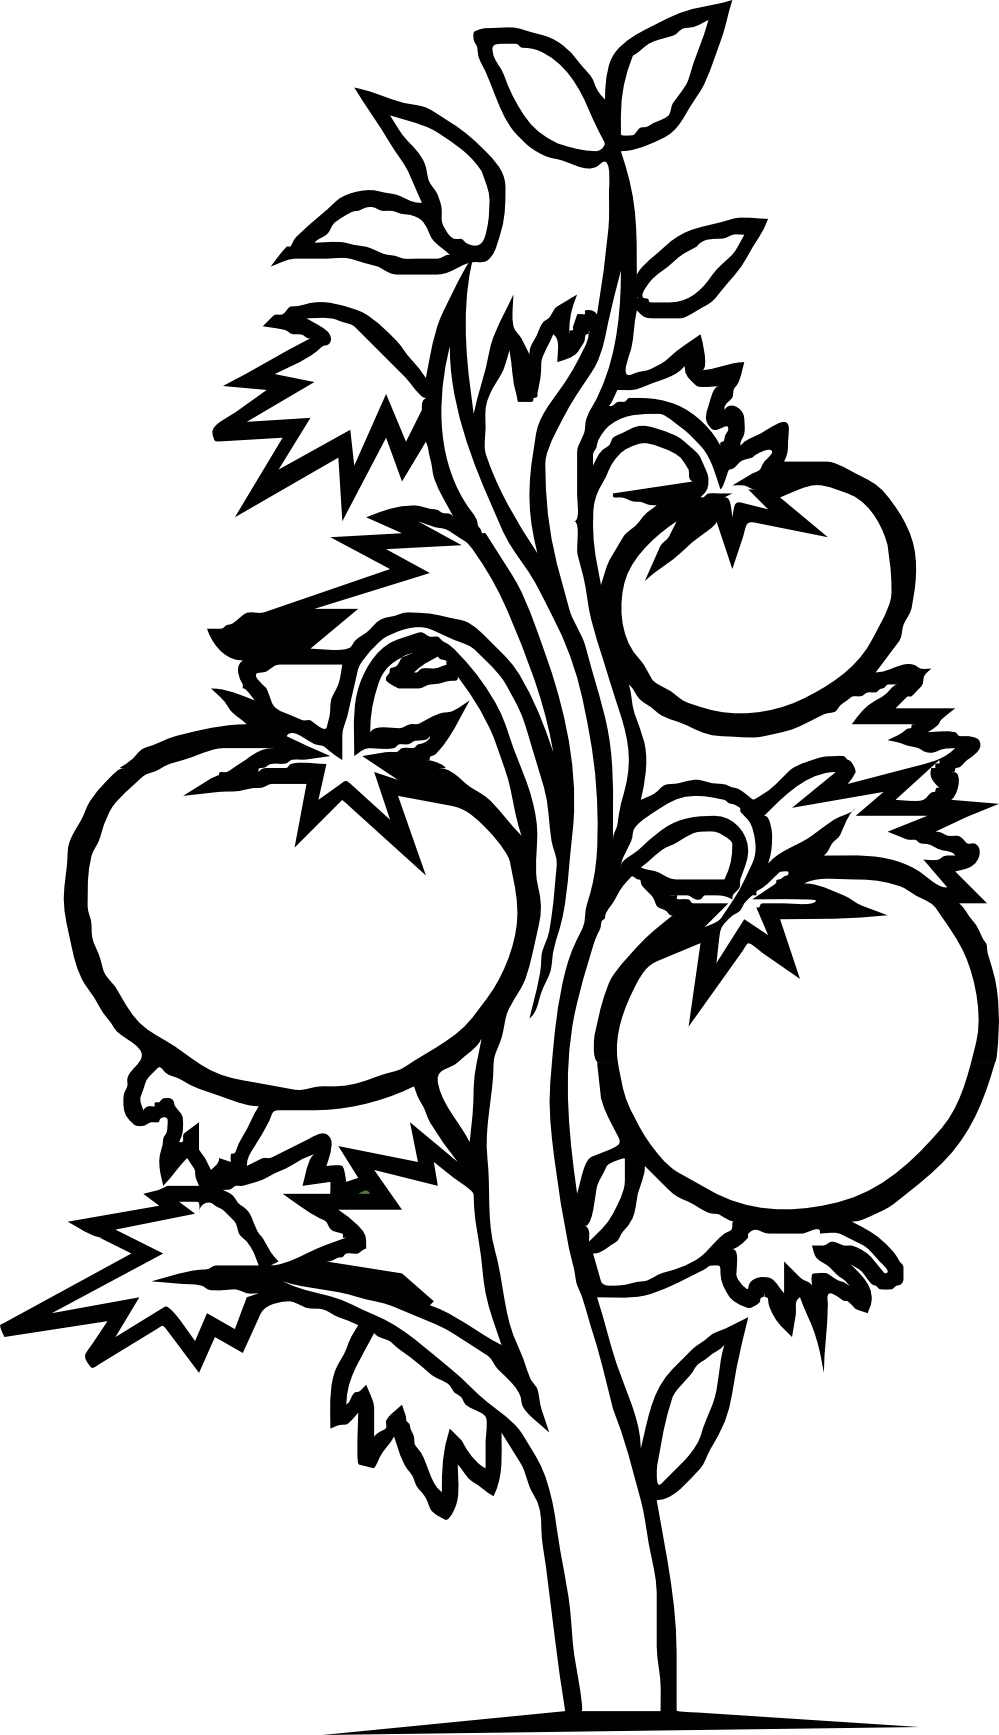 Tree house clipart black and white graphic download Tomato Clipart Black And White | Clipart Panda - Free Clipart Images graphic download